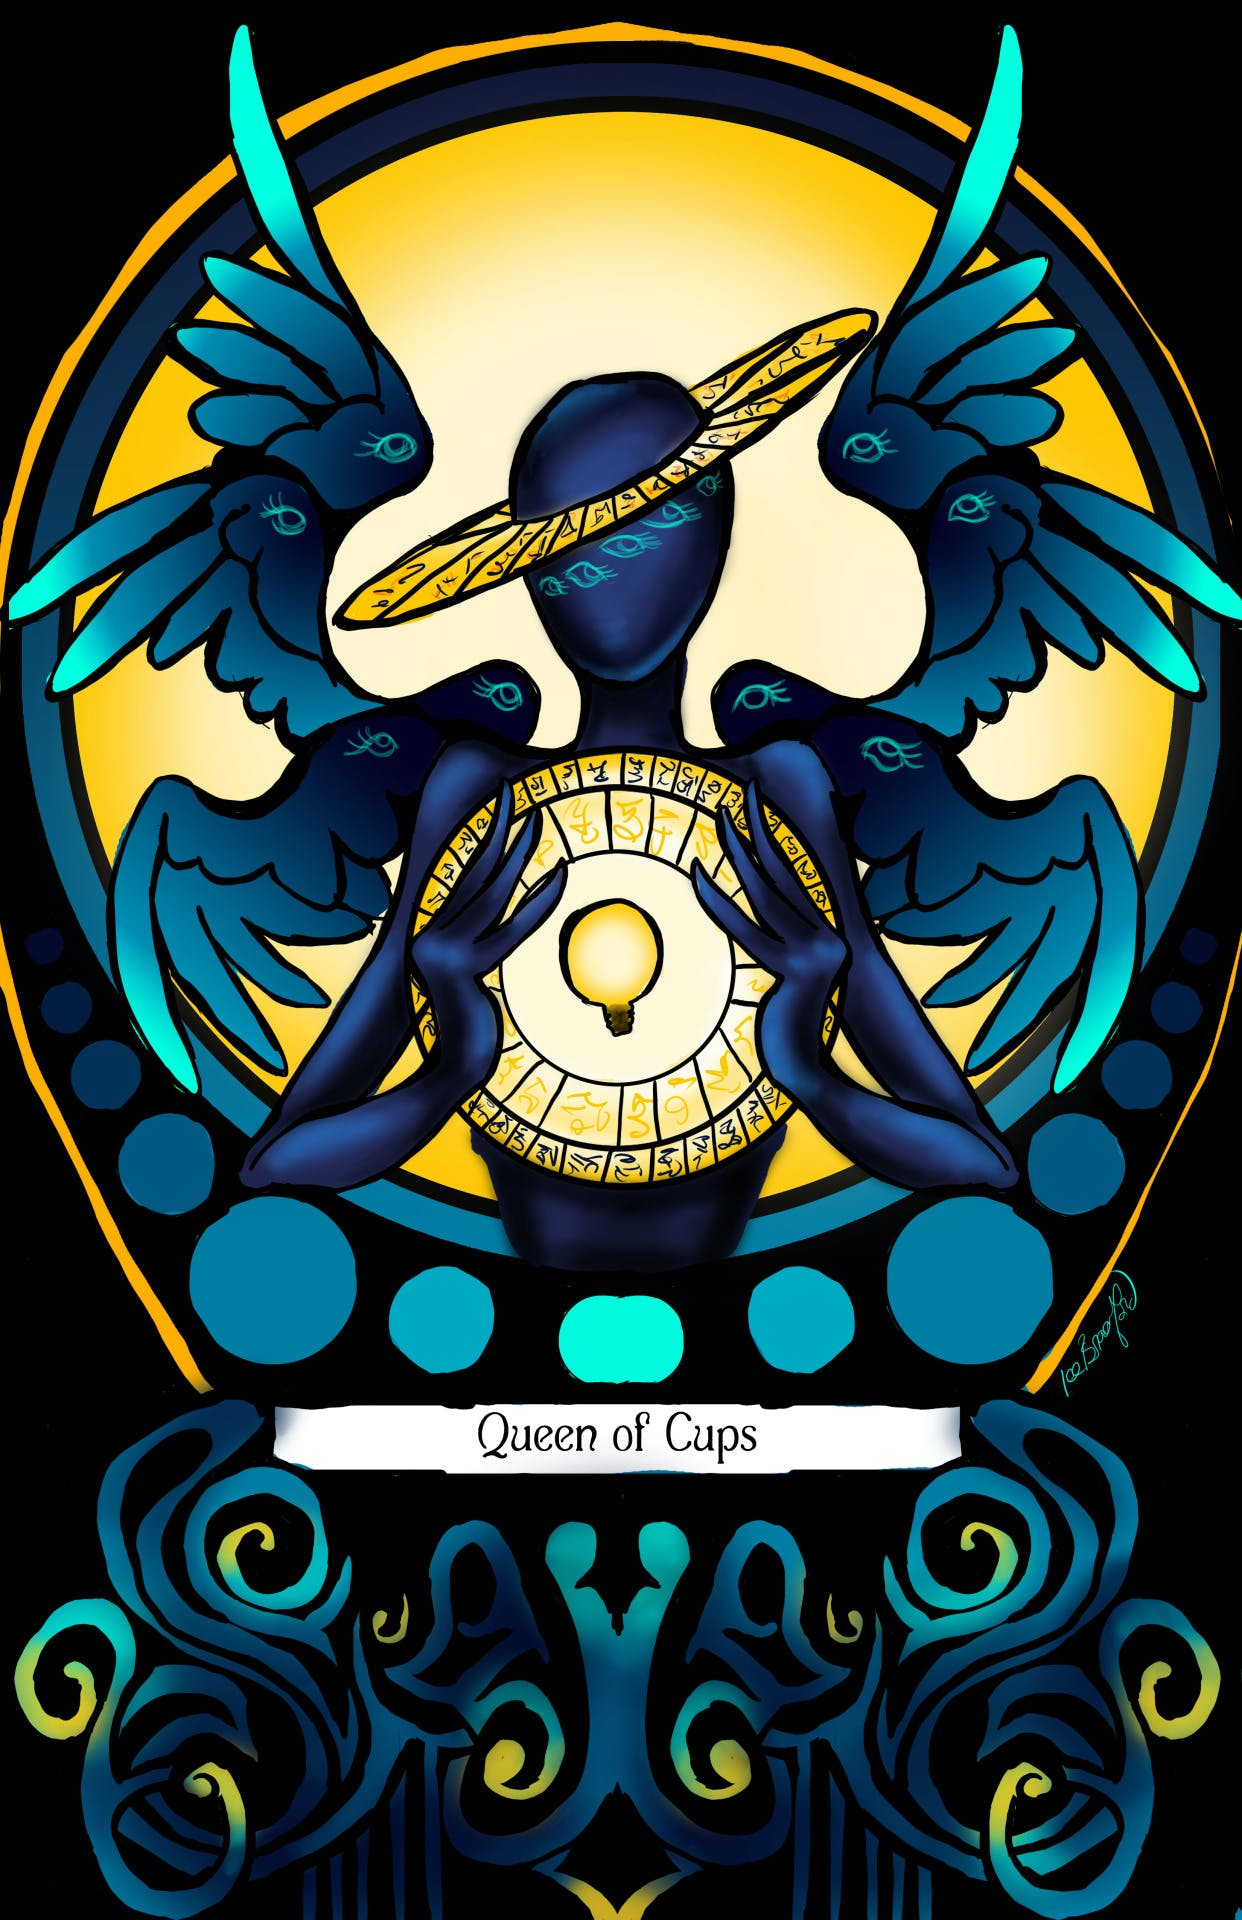 Tarot card for Welcome to Night Vale featuring the character Erika as the Queen of Cups